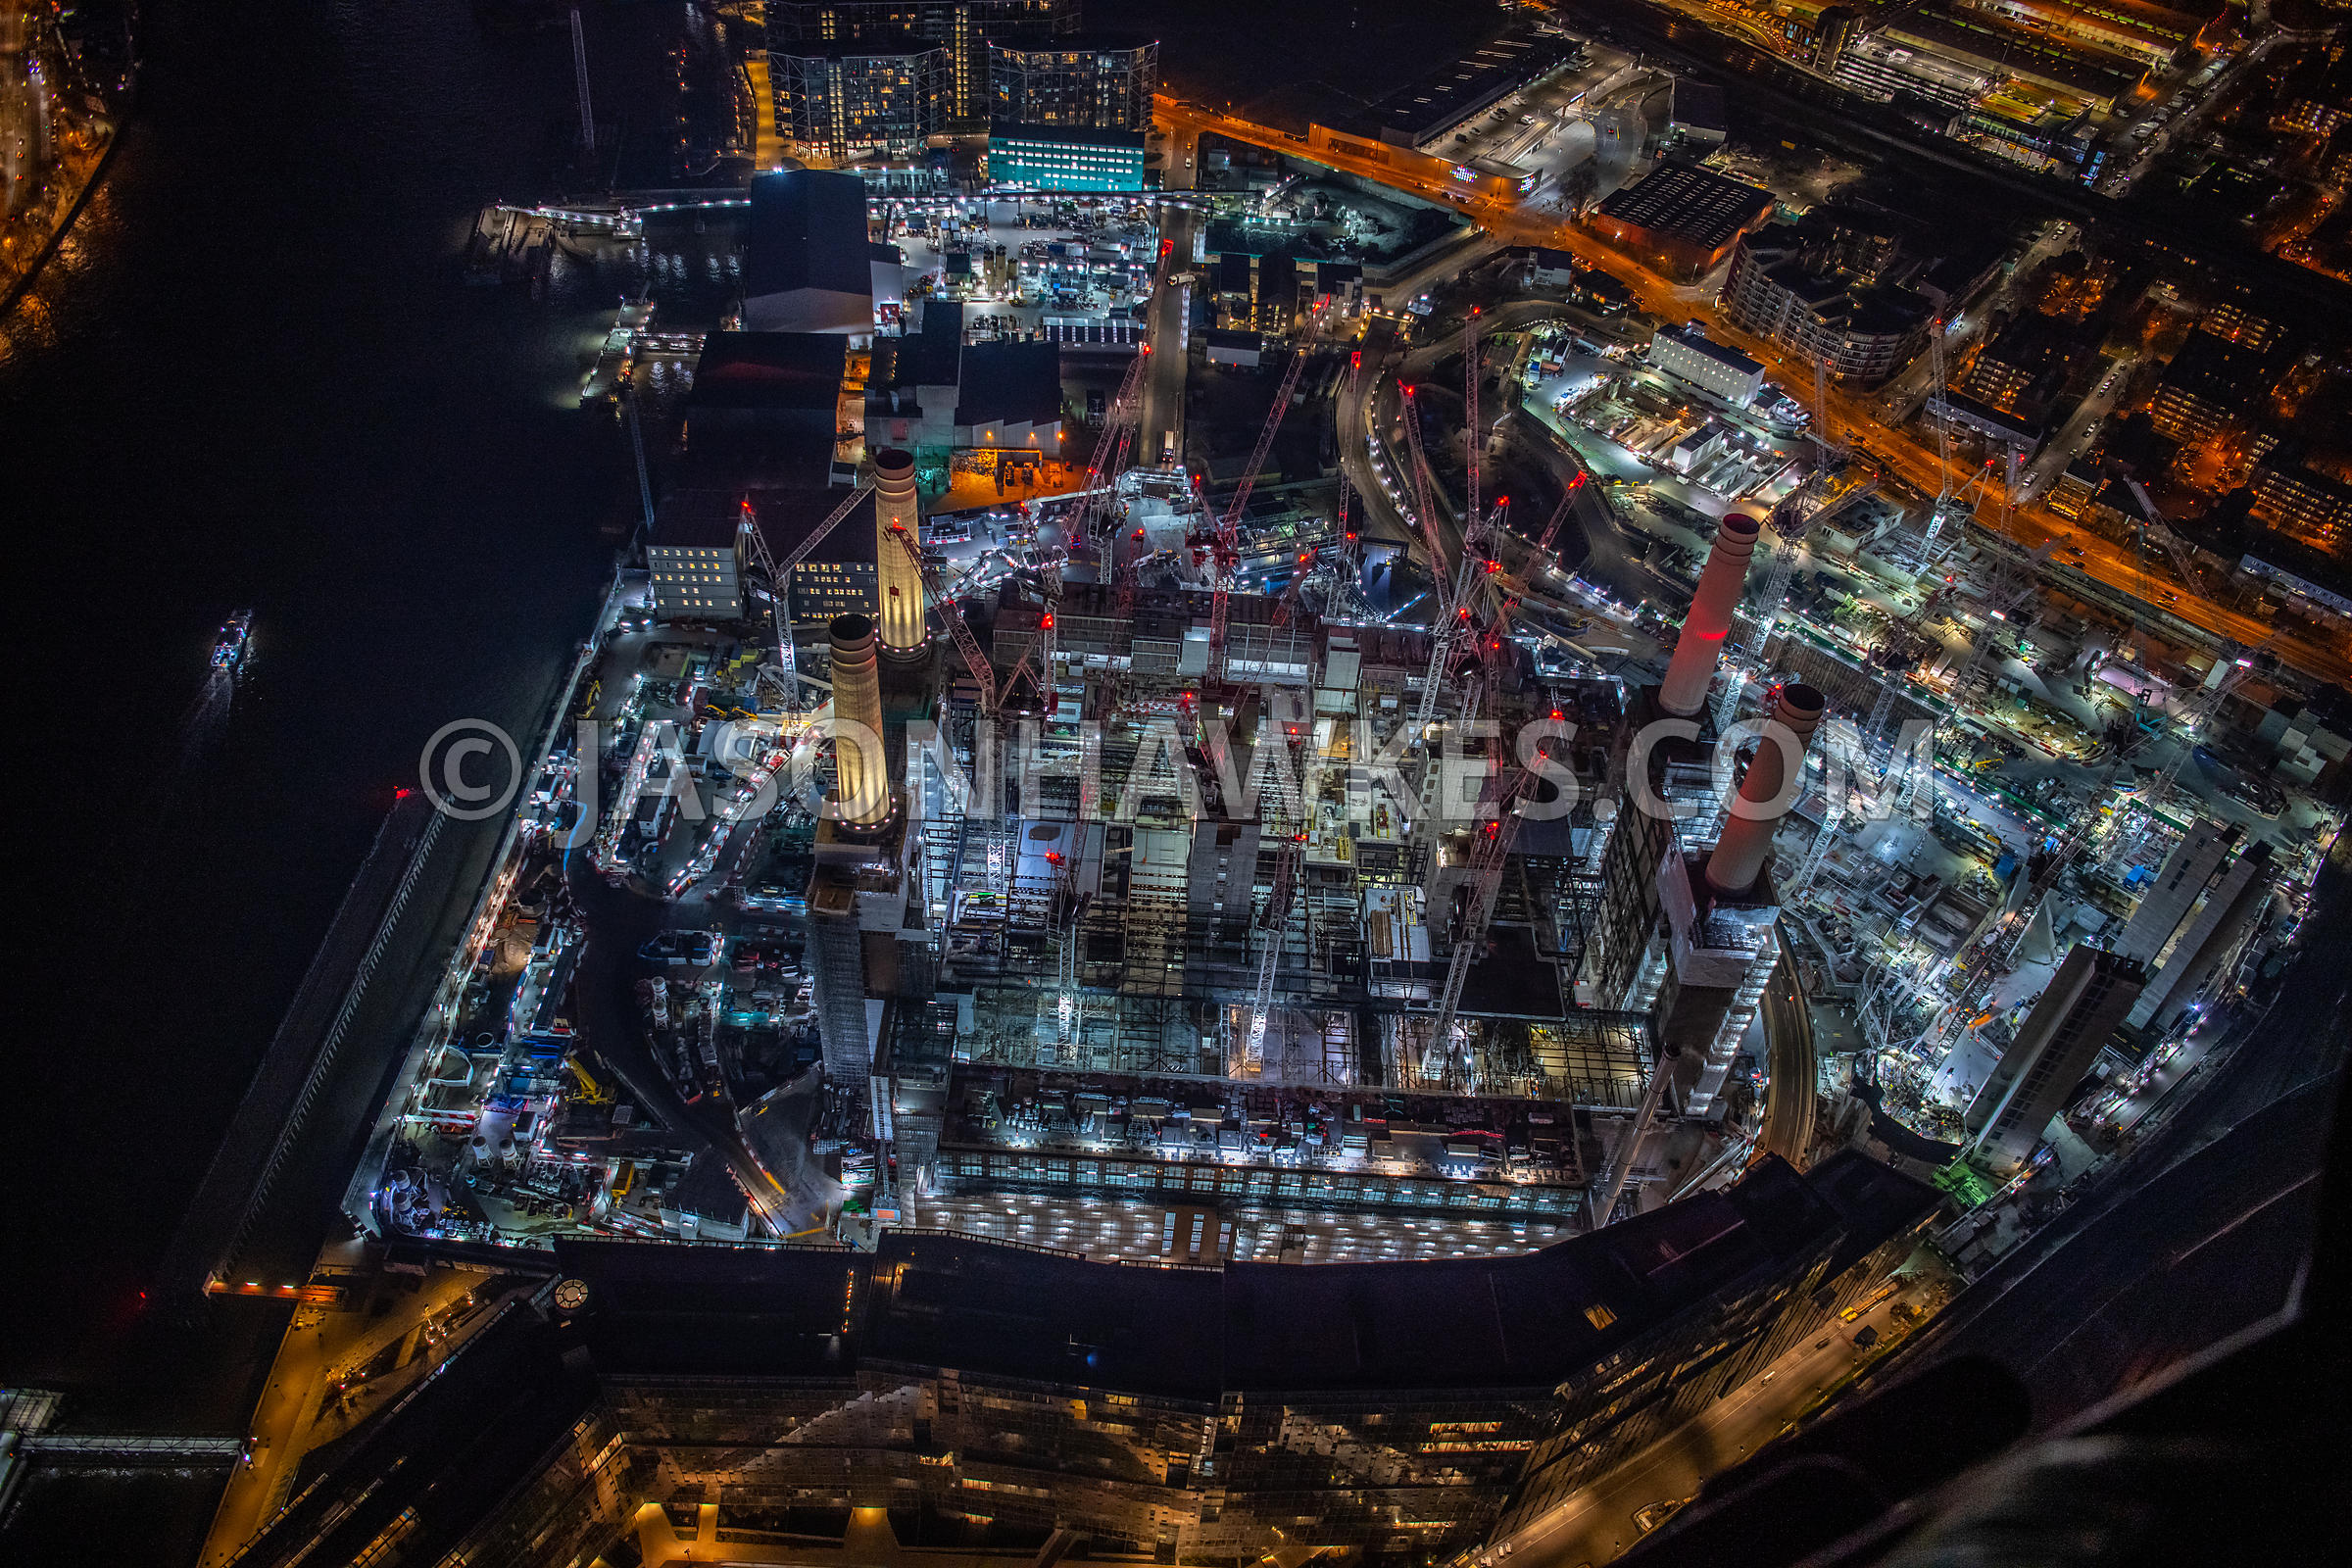 Night aerial view of Battersea Power Station. Battersea, London